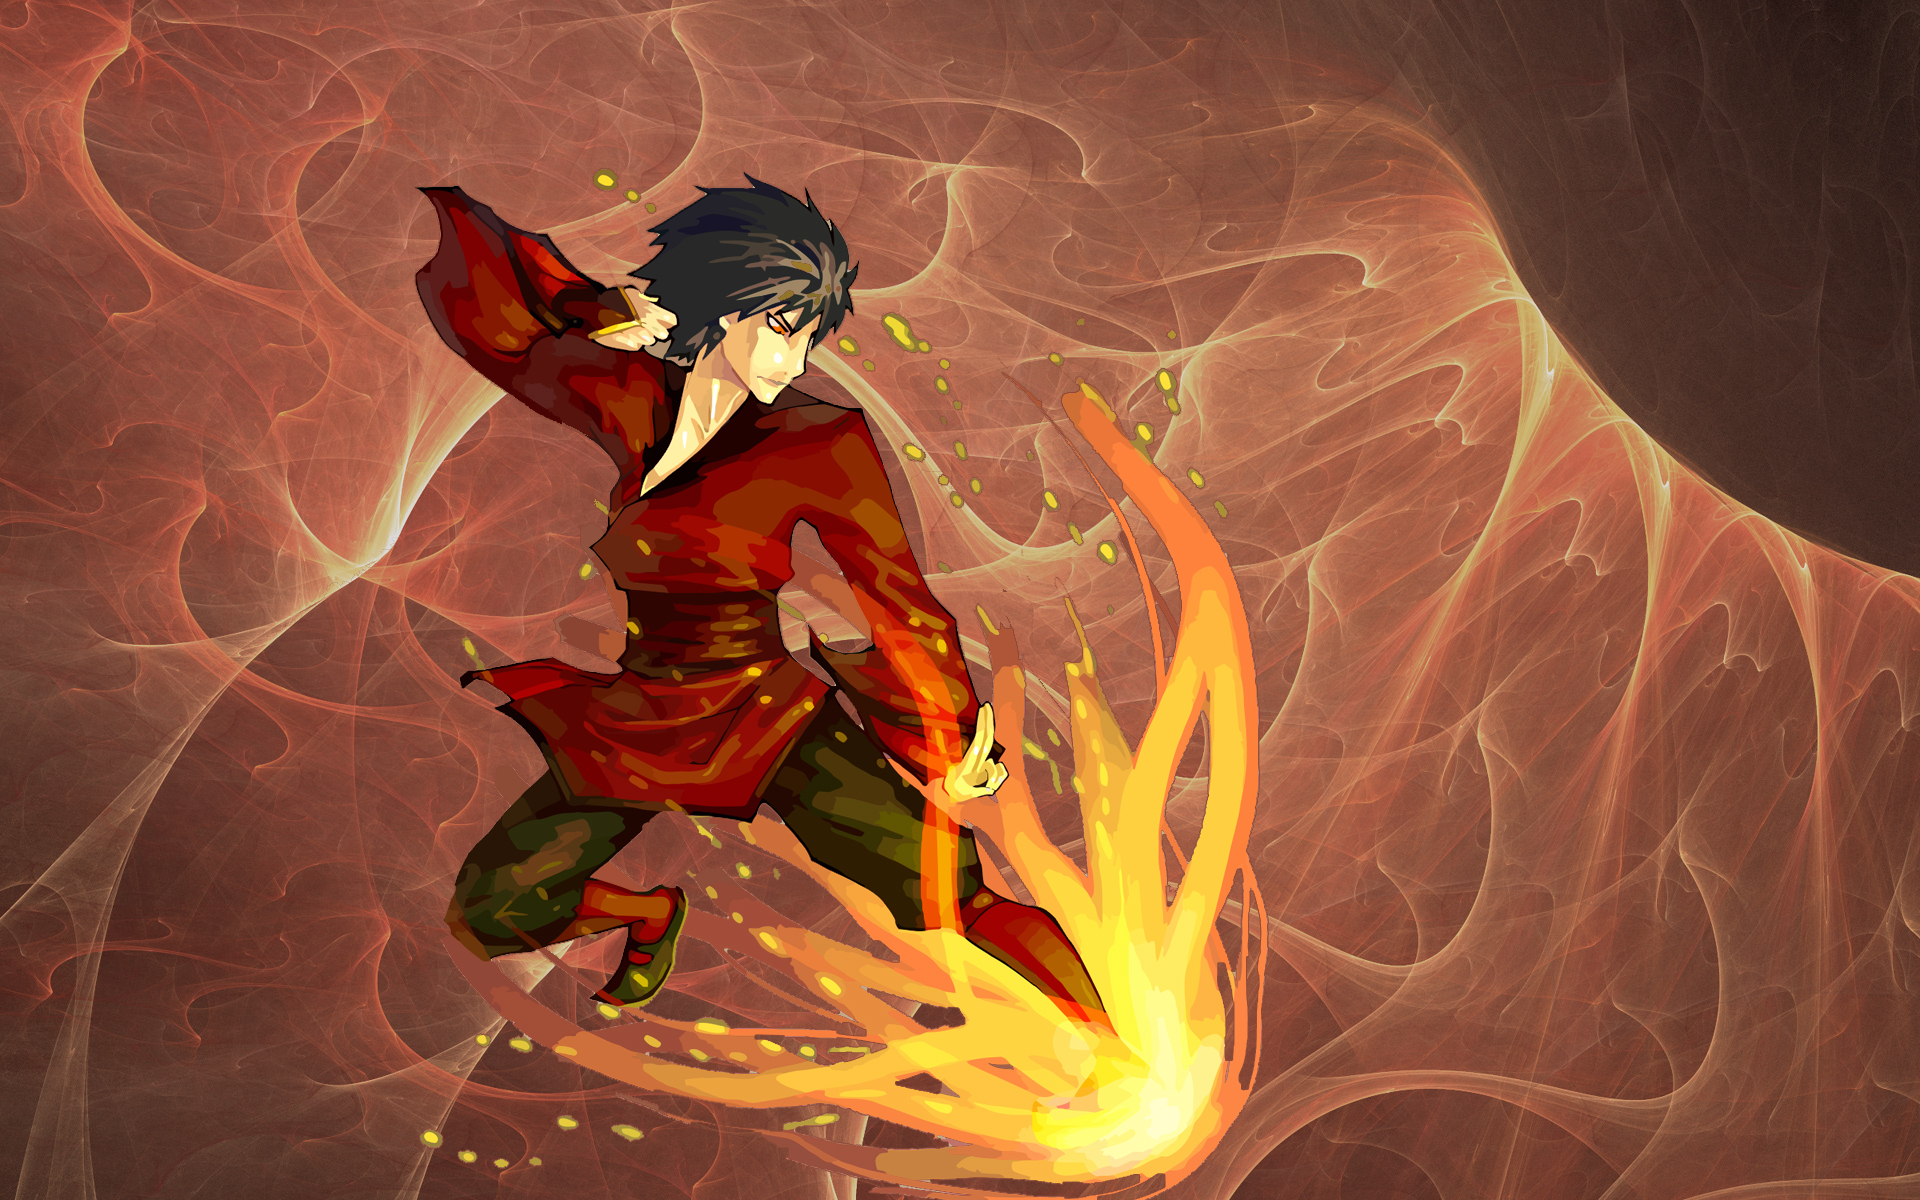 Cartoons Avatar The Last Airbender Zuko